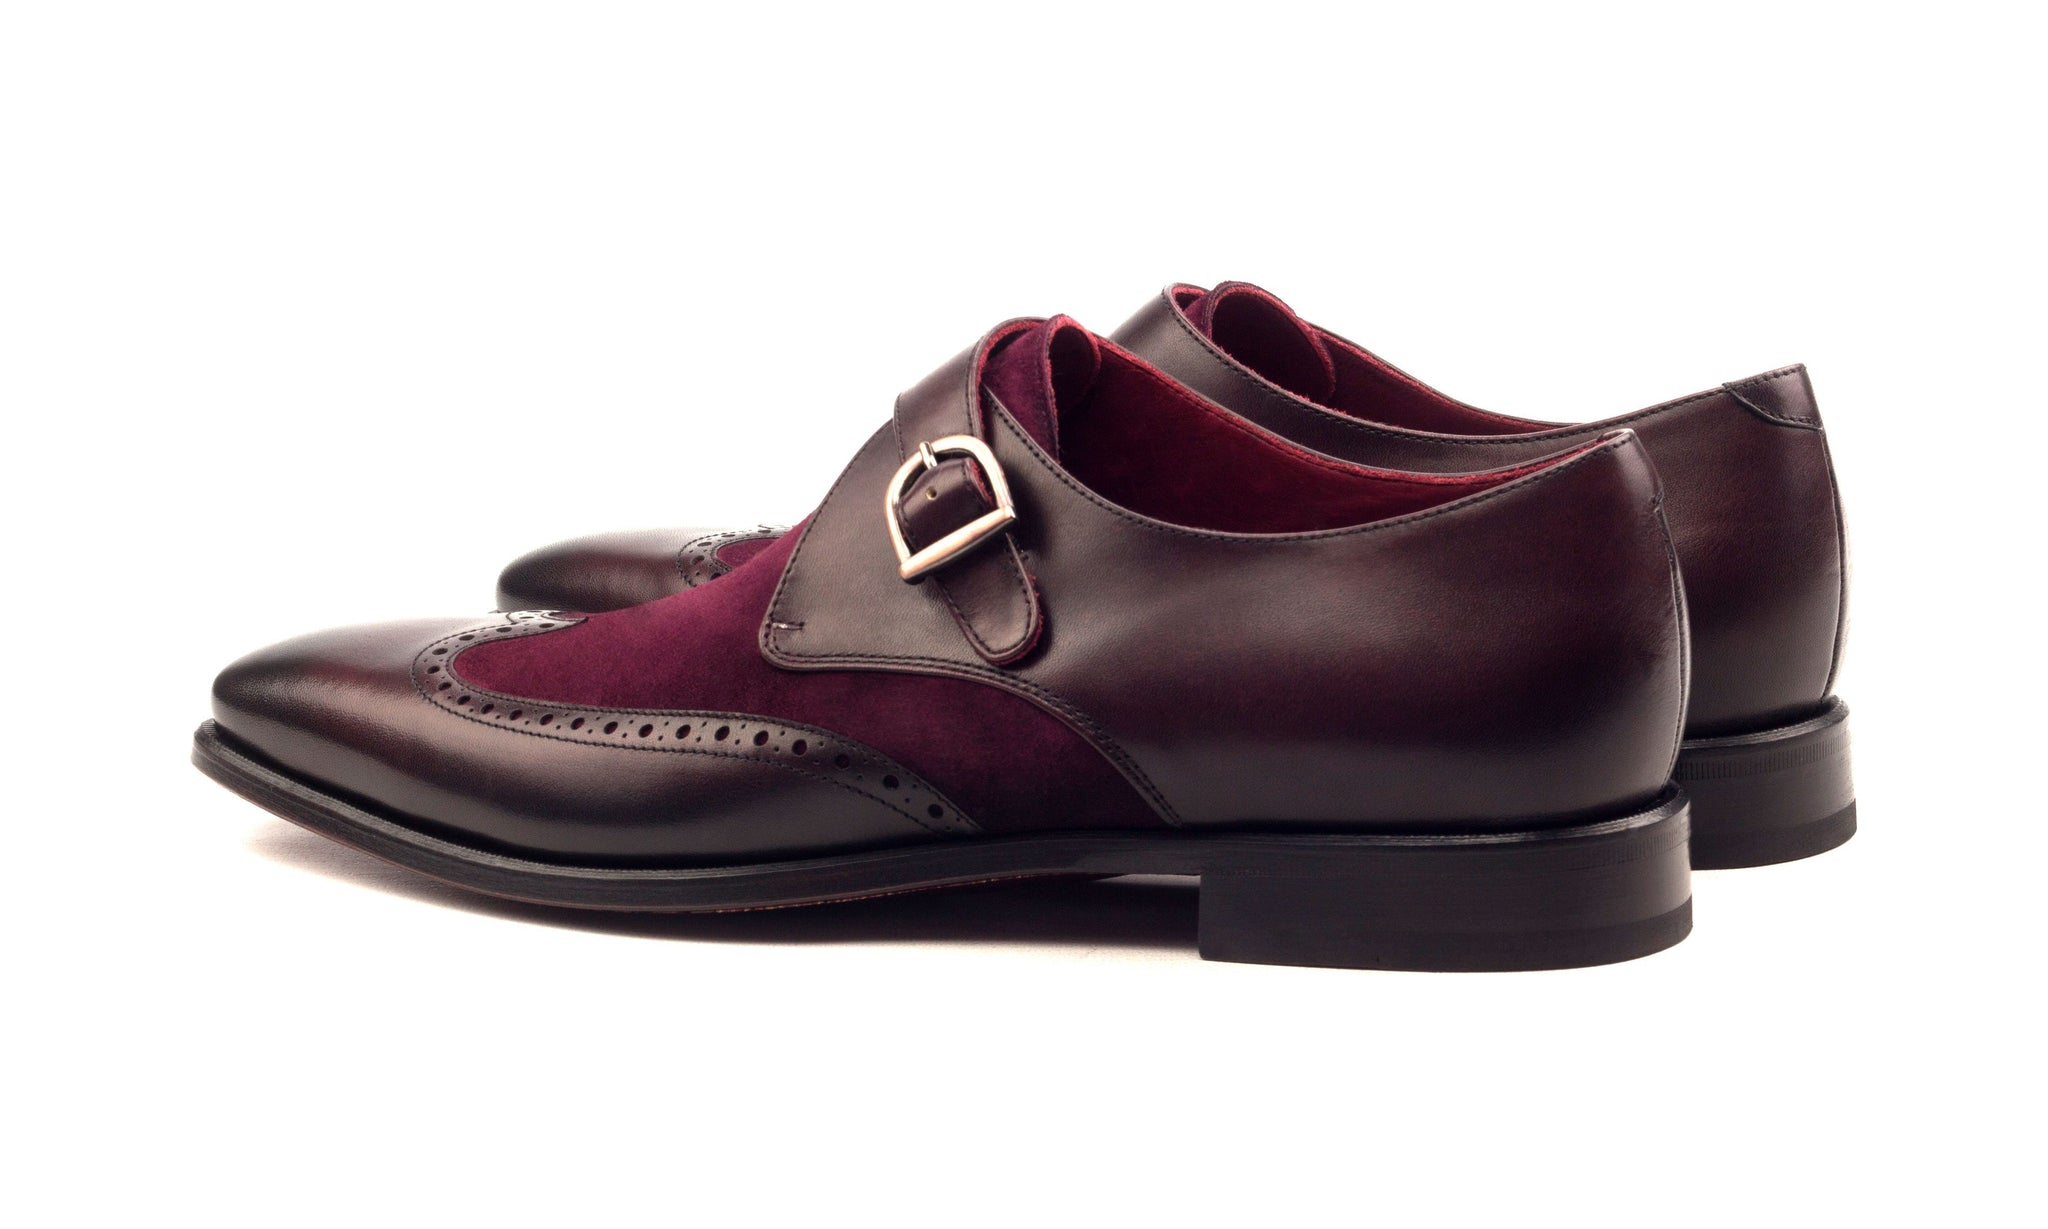 Burgundy Suede Leather Formal Wingtip Brogue Single Monk Strap Buckle Shoes for Men with Leather Sole. Goodyear Welted Construction Available.